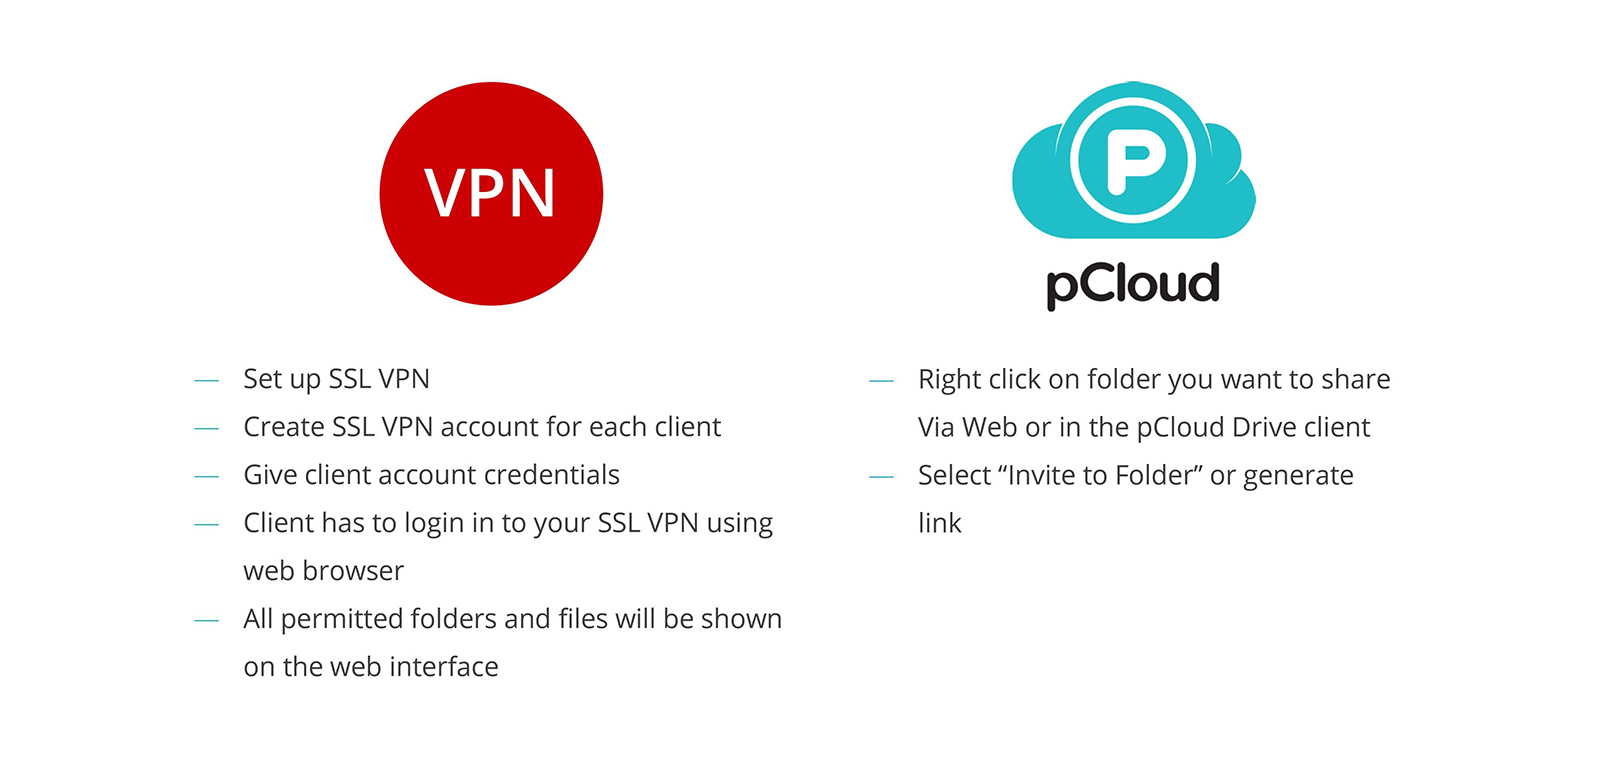 VPN vs. Cloud-Sharing-Files-with-a-client